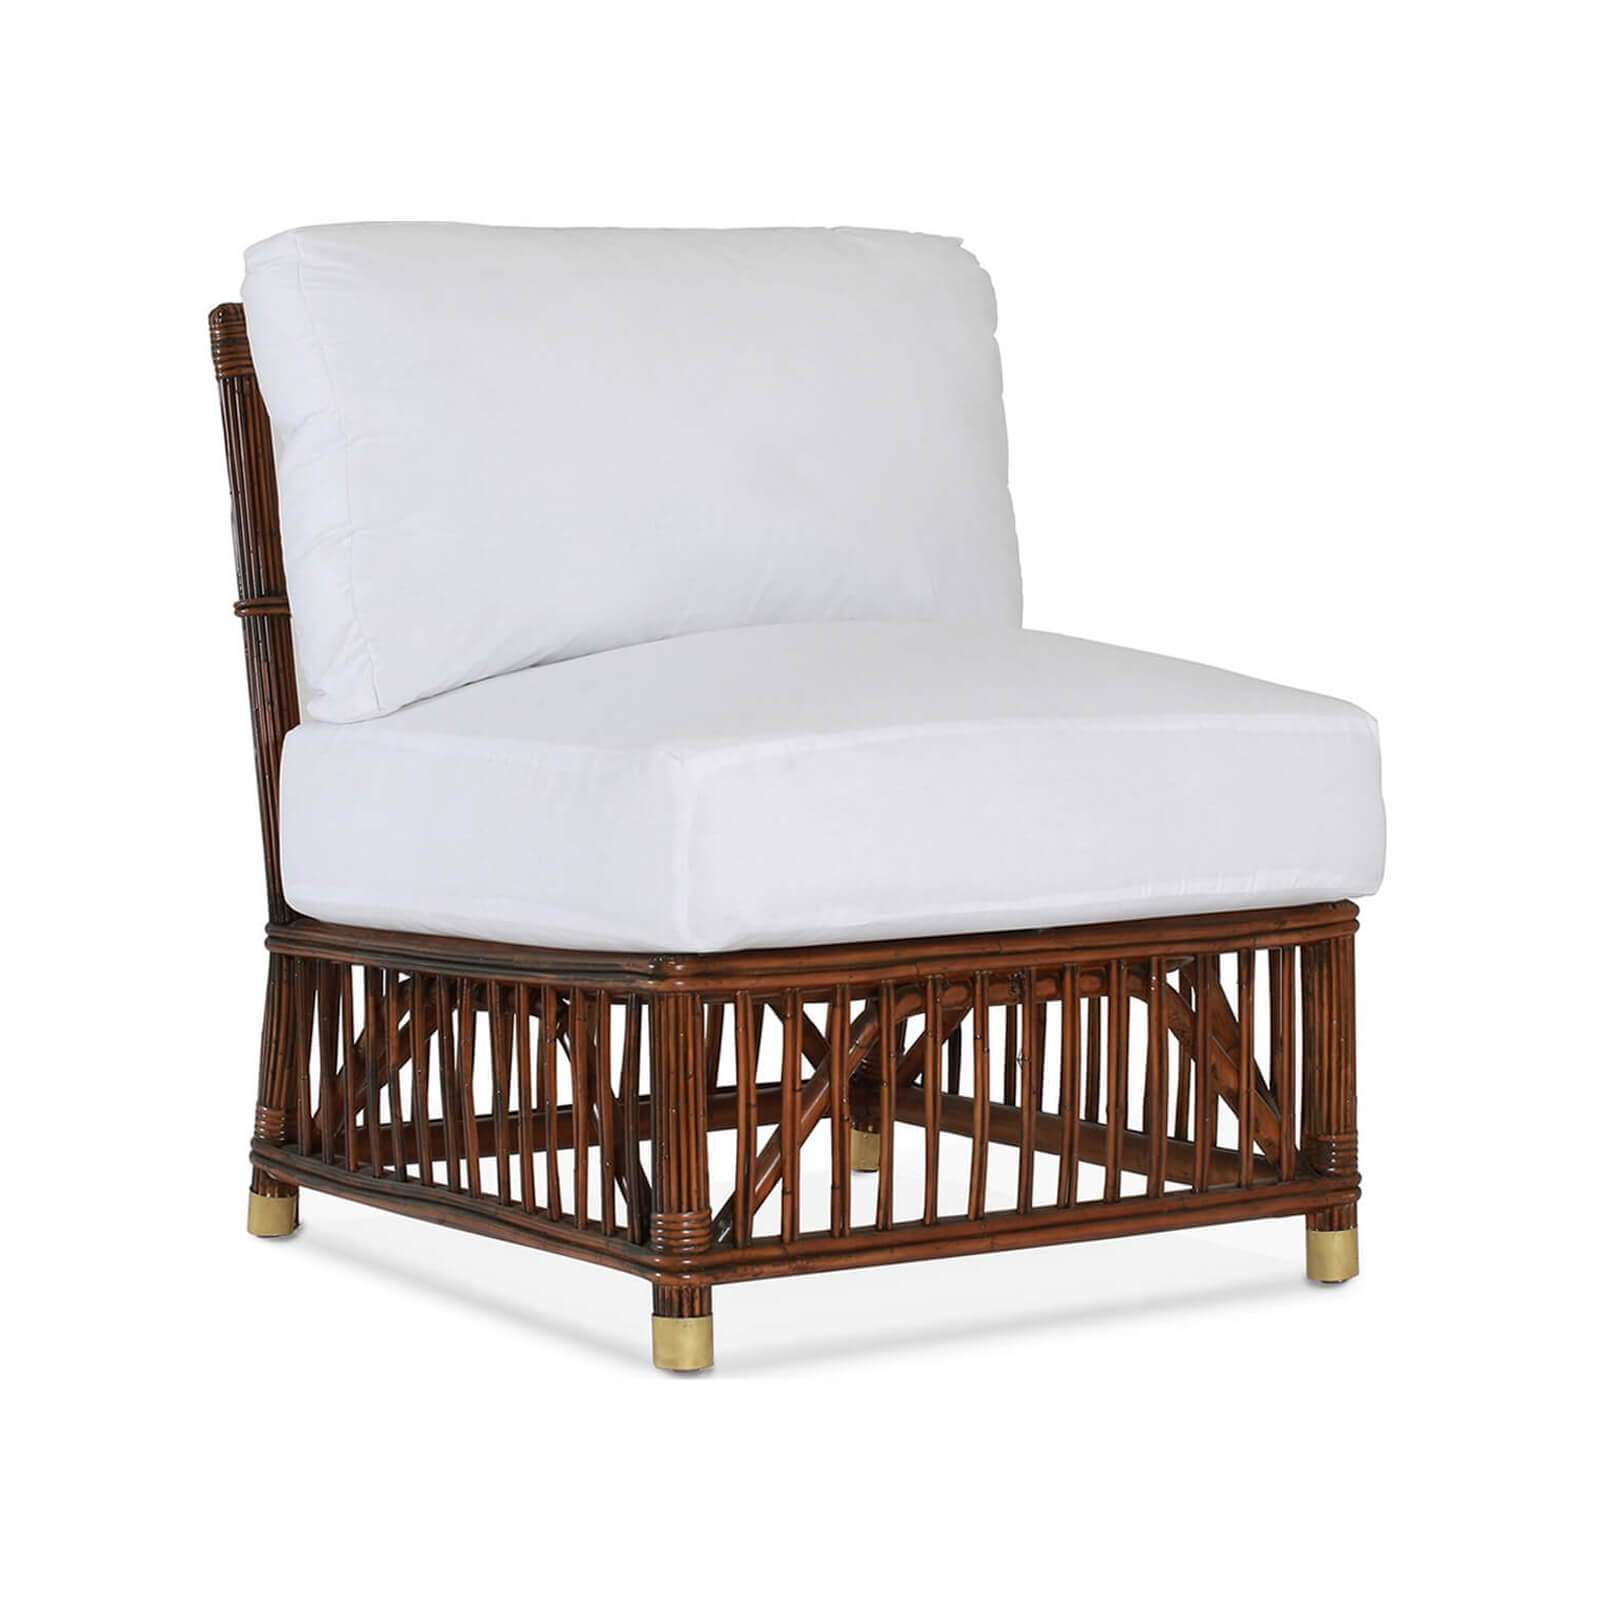 BUNGALOW SLIPPER CHAIR 01 - STUART MEMBERY HOME COLLECTION